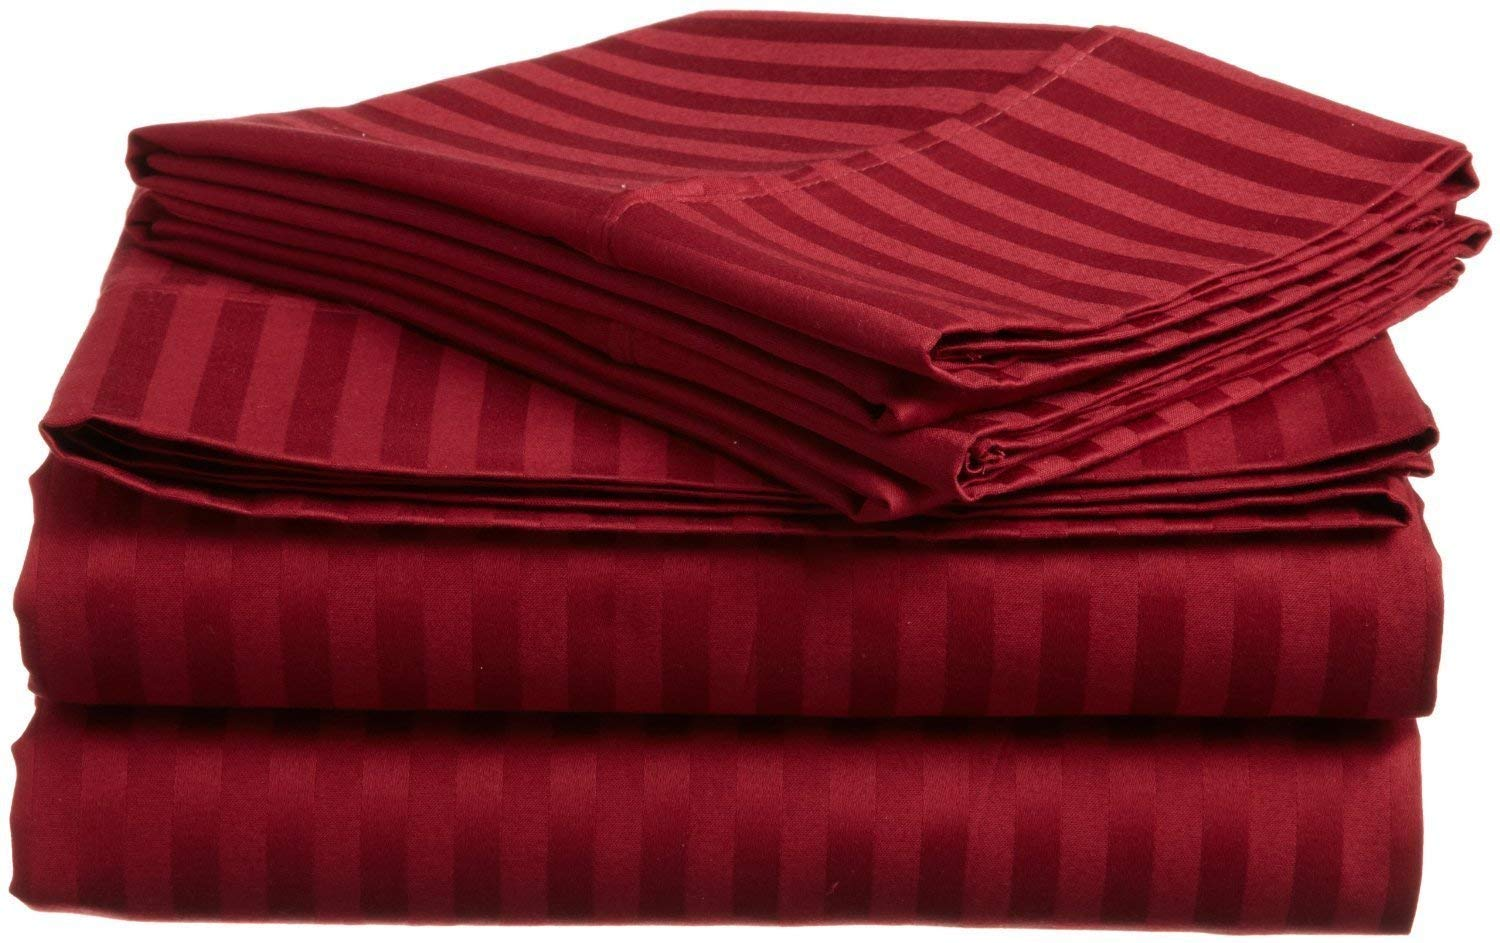 Short Queen Size Bed Sheets Set 400-Thread-Count 100% Cotton Ultra Soft Breathable & Cozy Bedding Sheets 4-Piece - Short Queen, Burgundy Stripe